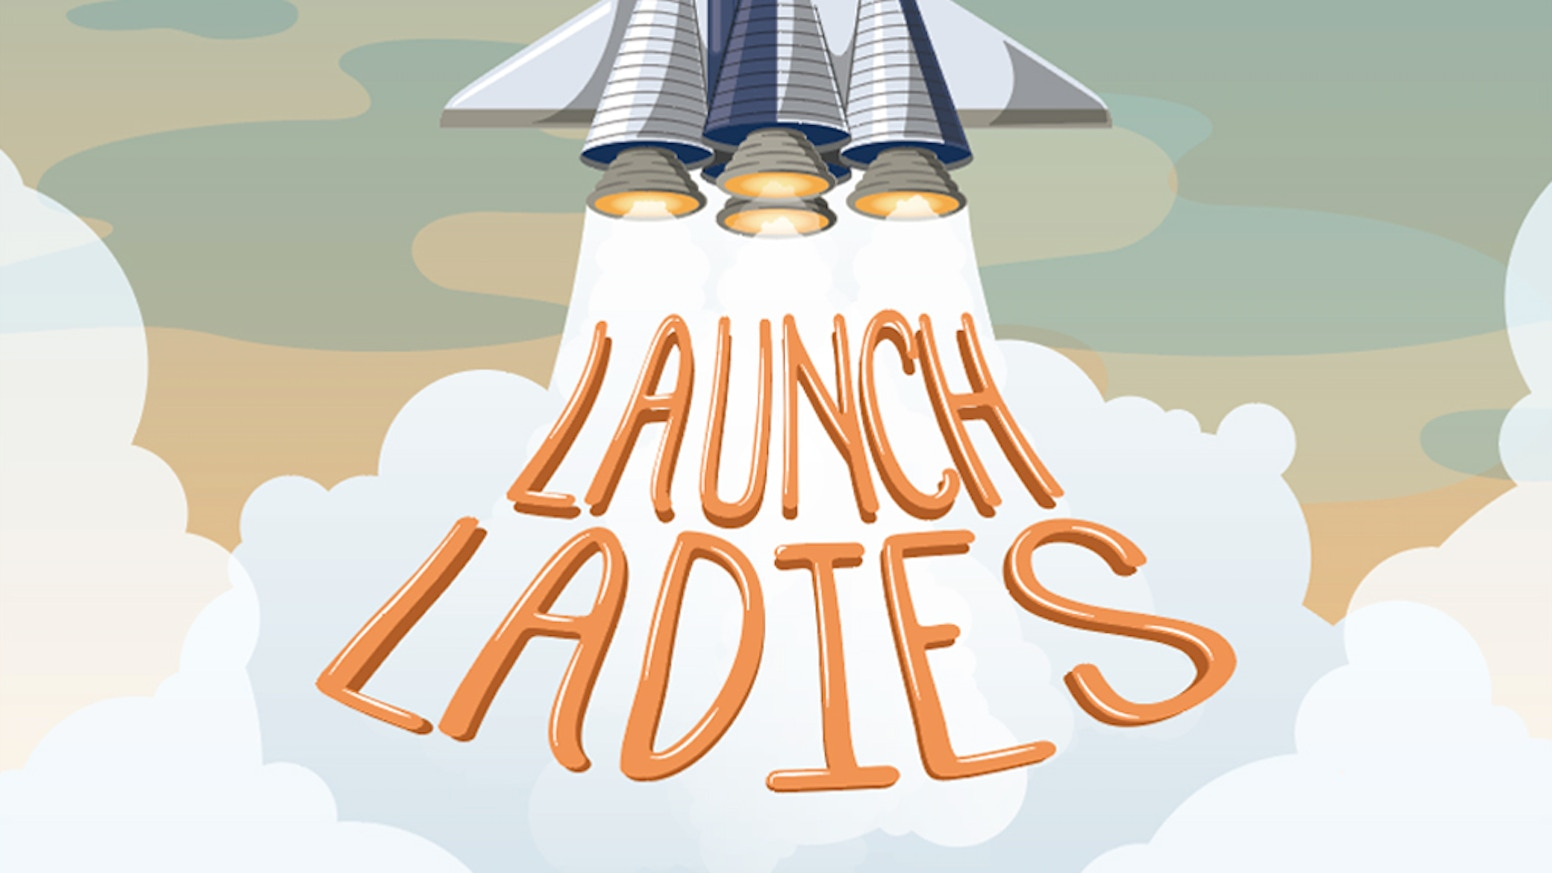 Launch Ladies is a tale for tiny tots, introducing them to the badass ladies of space exploration past, present and future.